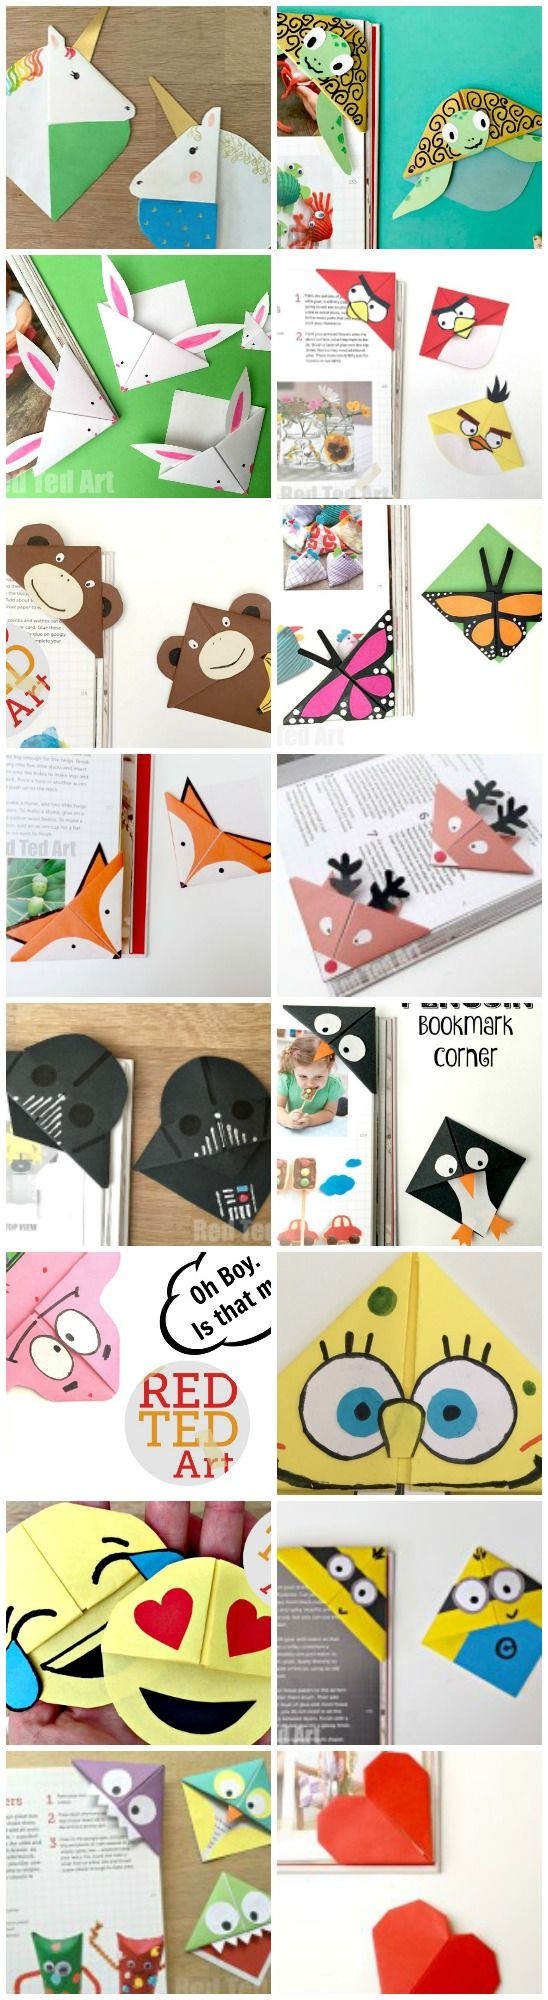 Bookmark Design Ideas 19 Corner Bookmarks How To Designs